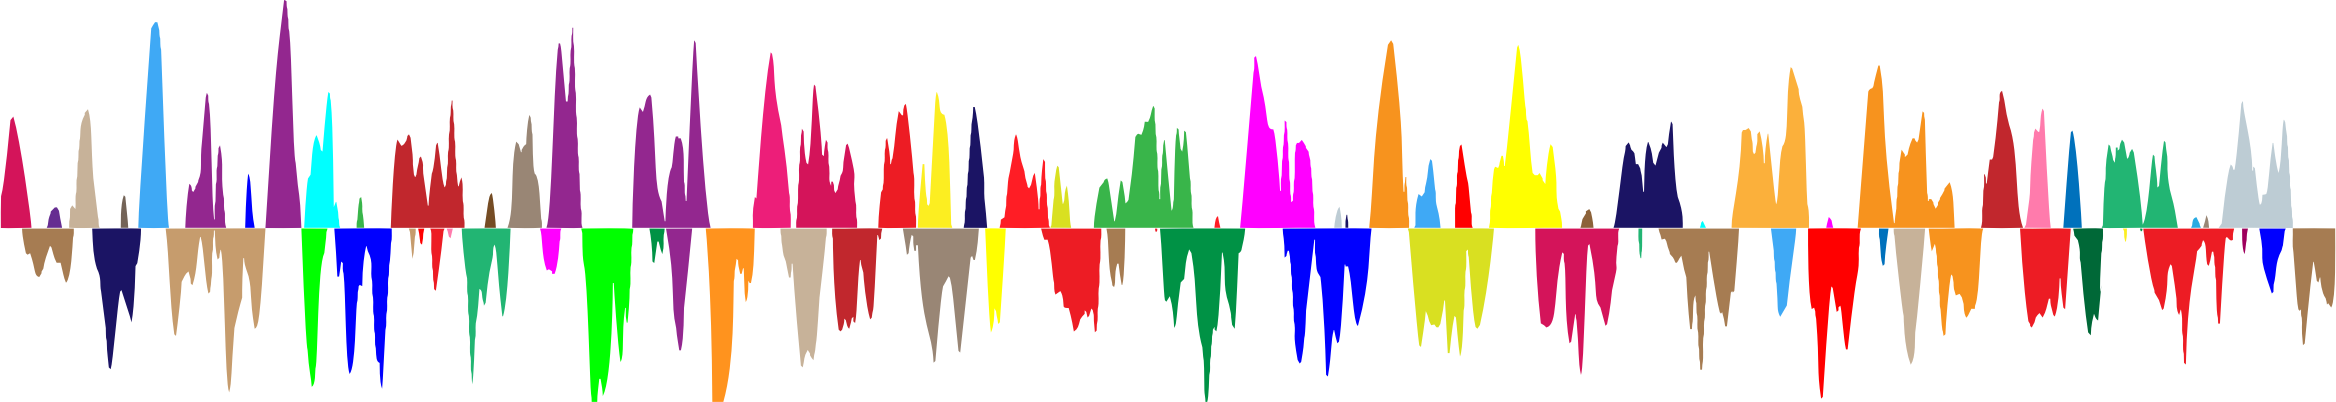 Prismatic Sound Wave Zoomed by GDJ